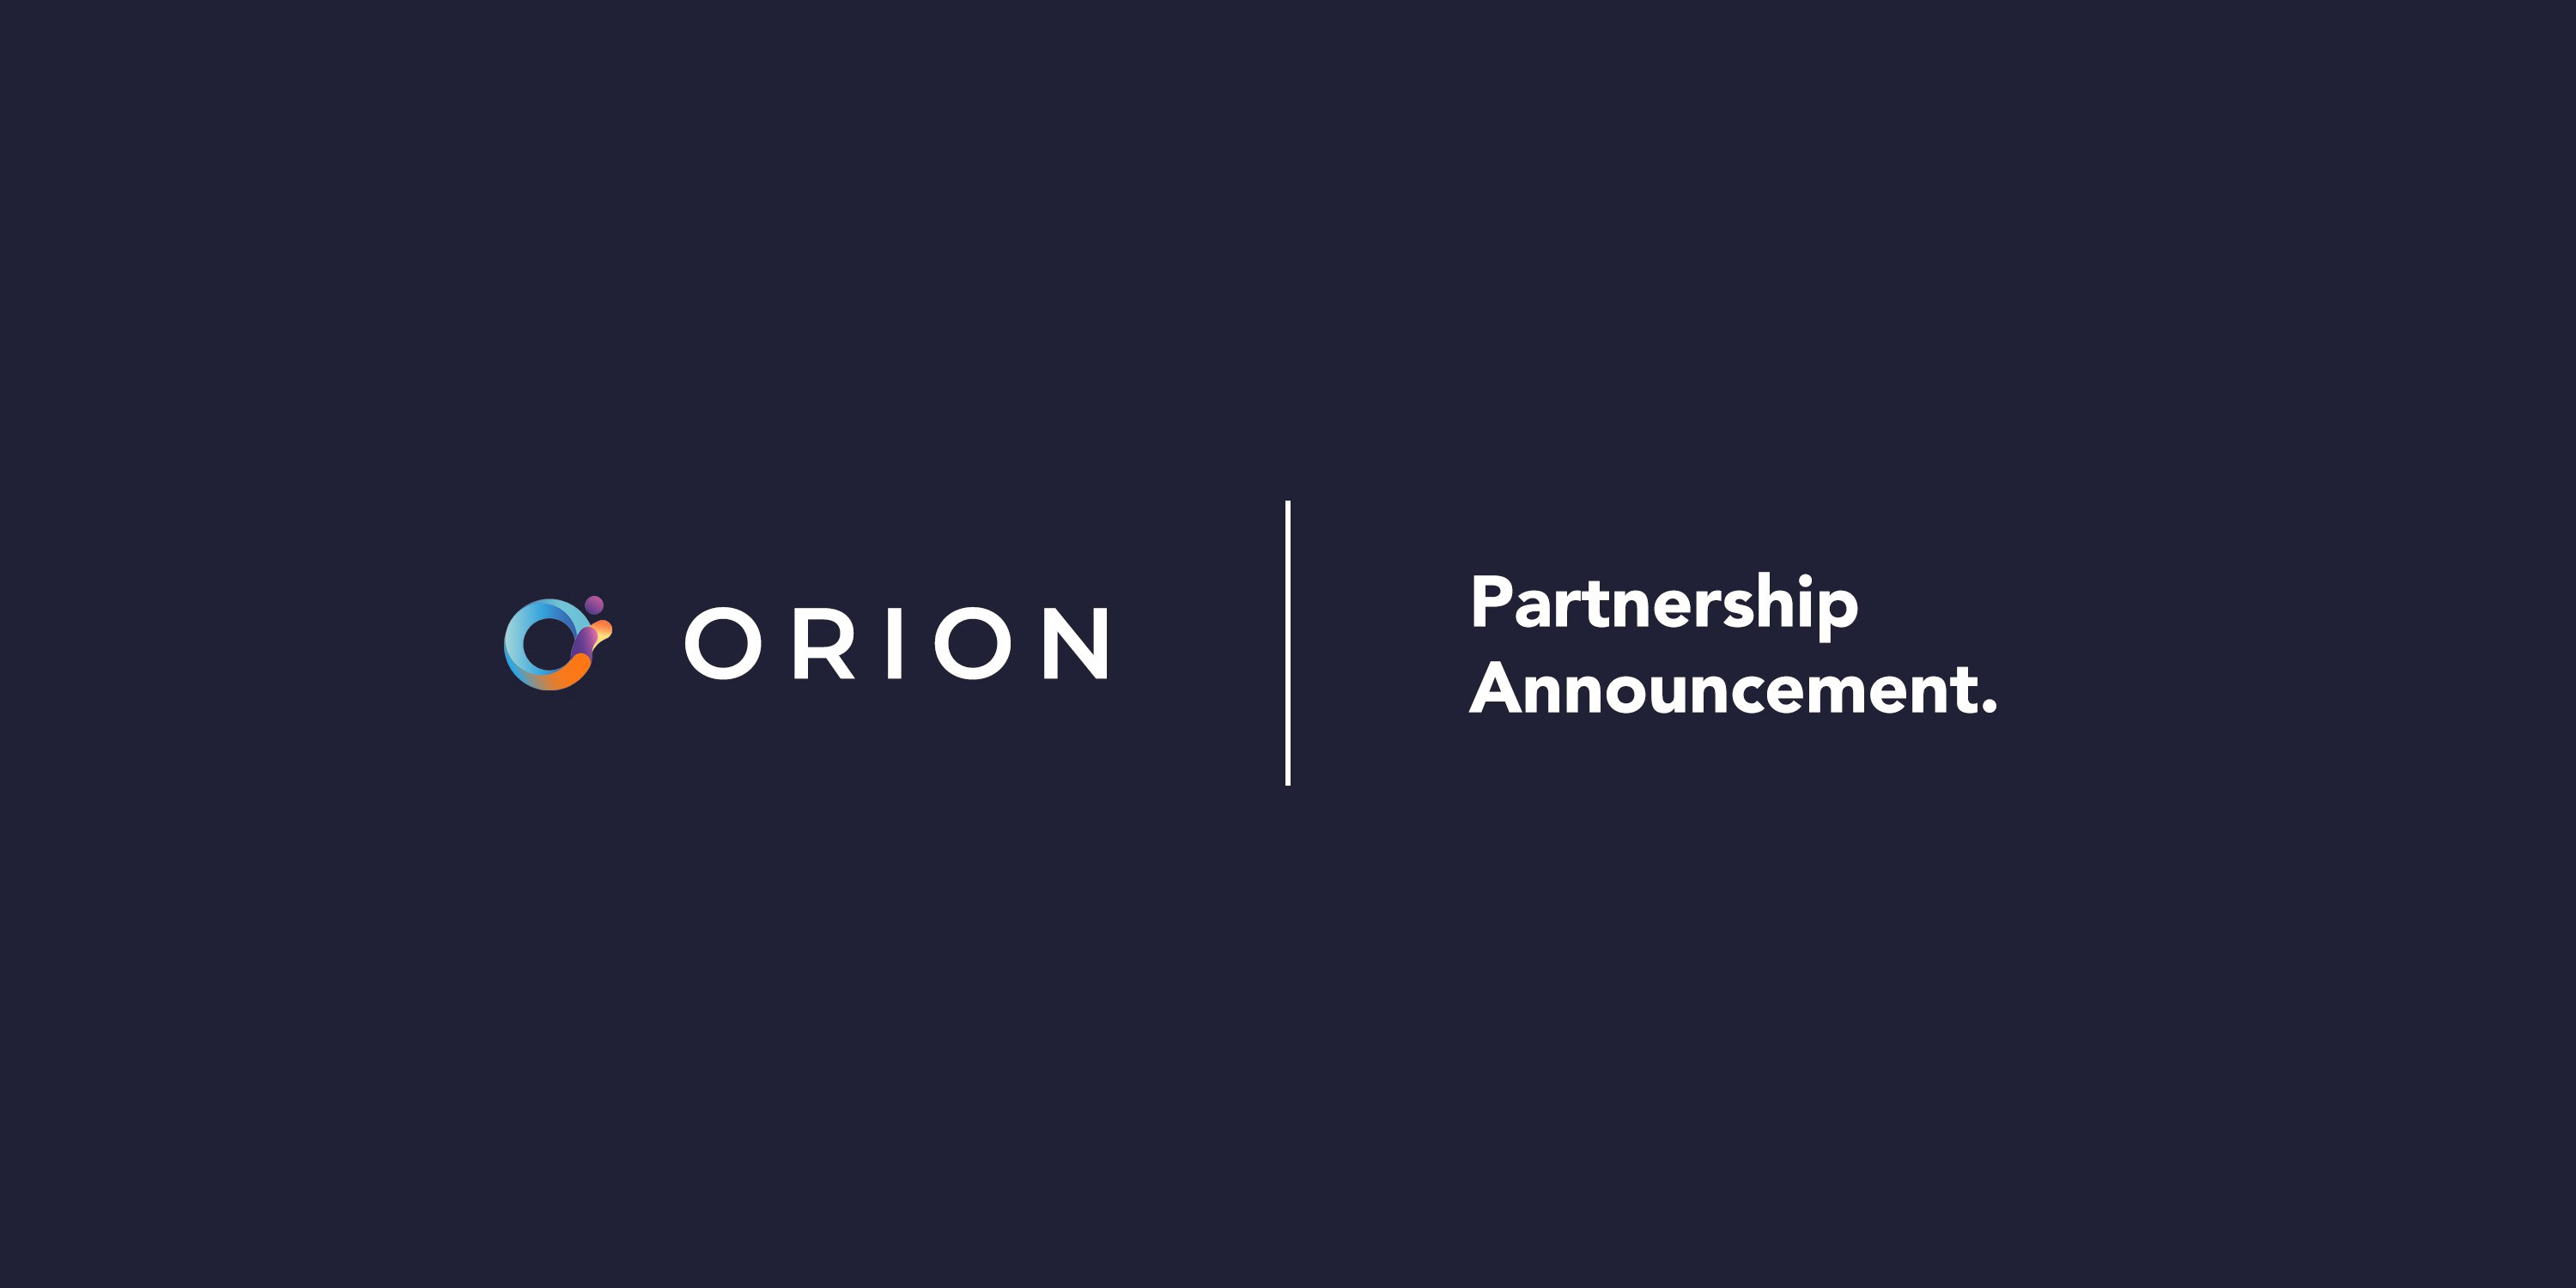 Orion Partners with Holochain